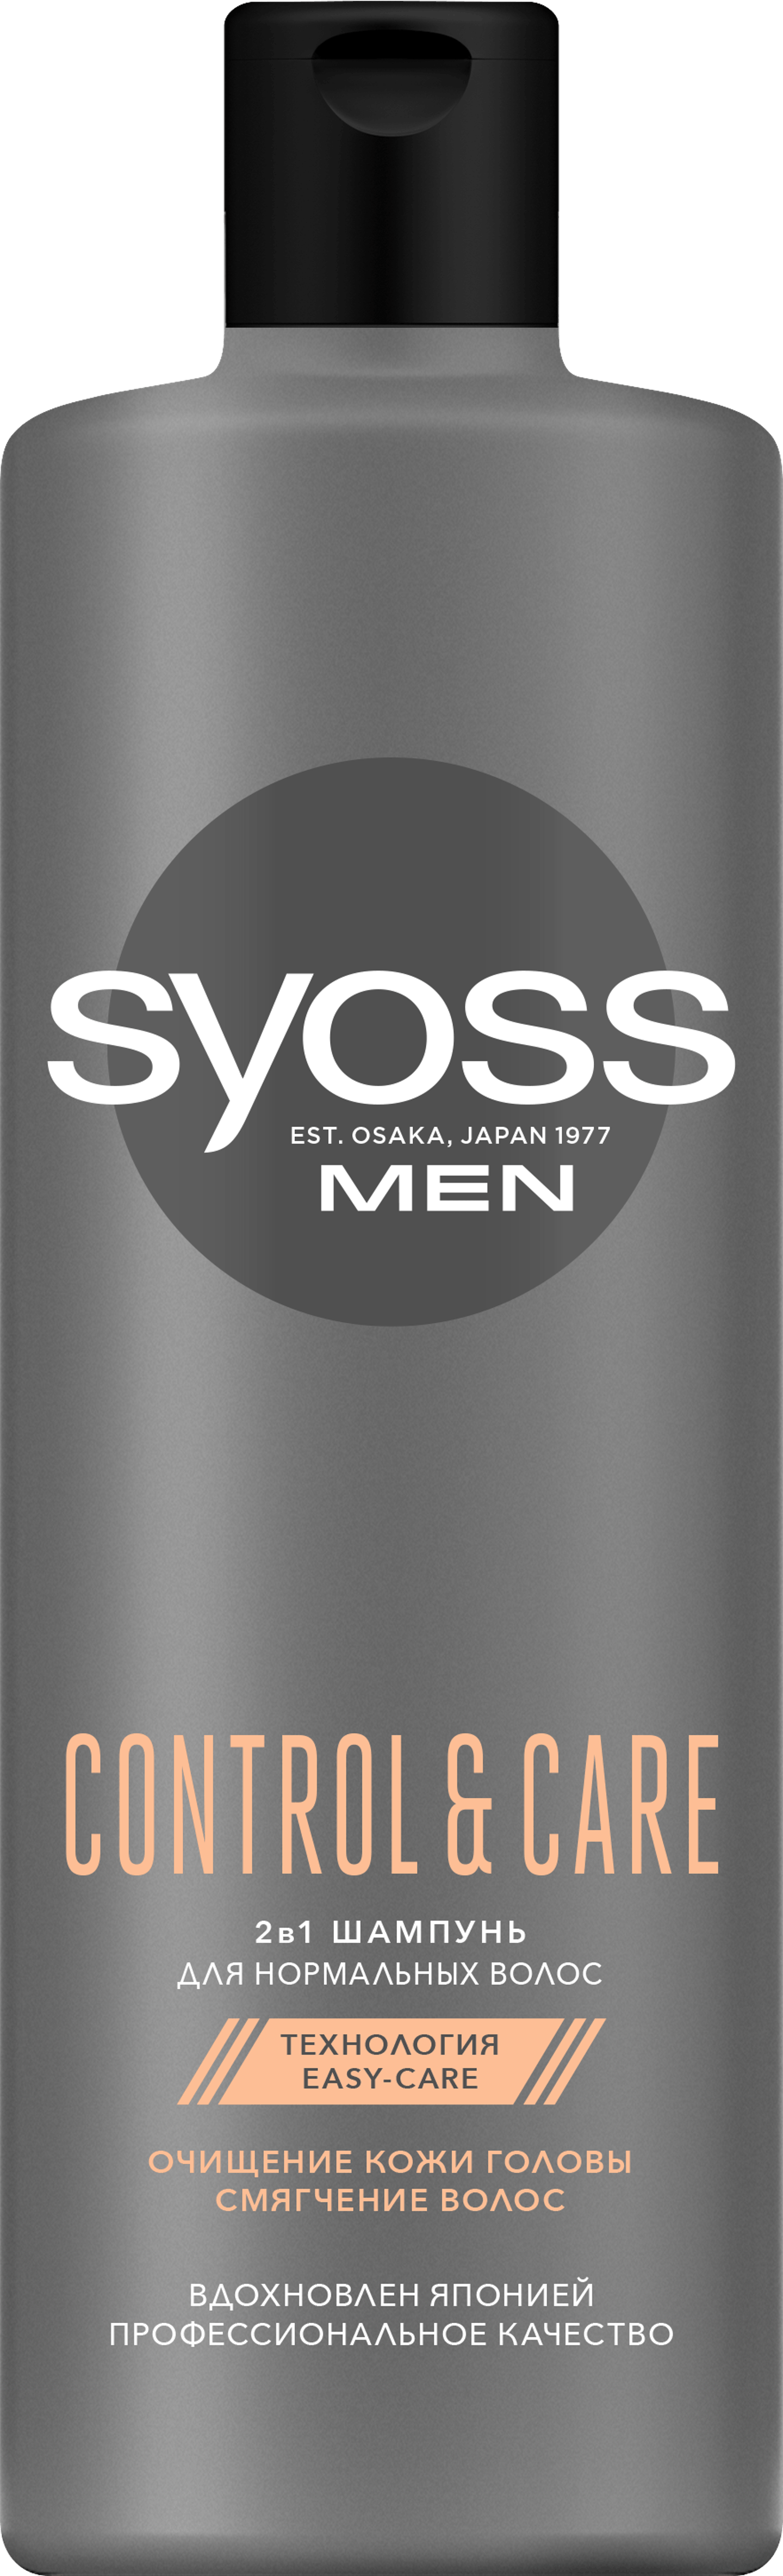 SYOSS MEN CONTROL&CARE ШАМПУНЬ